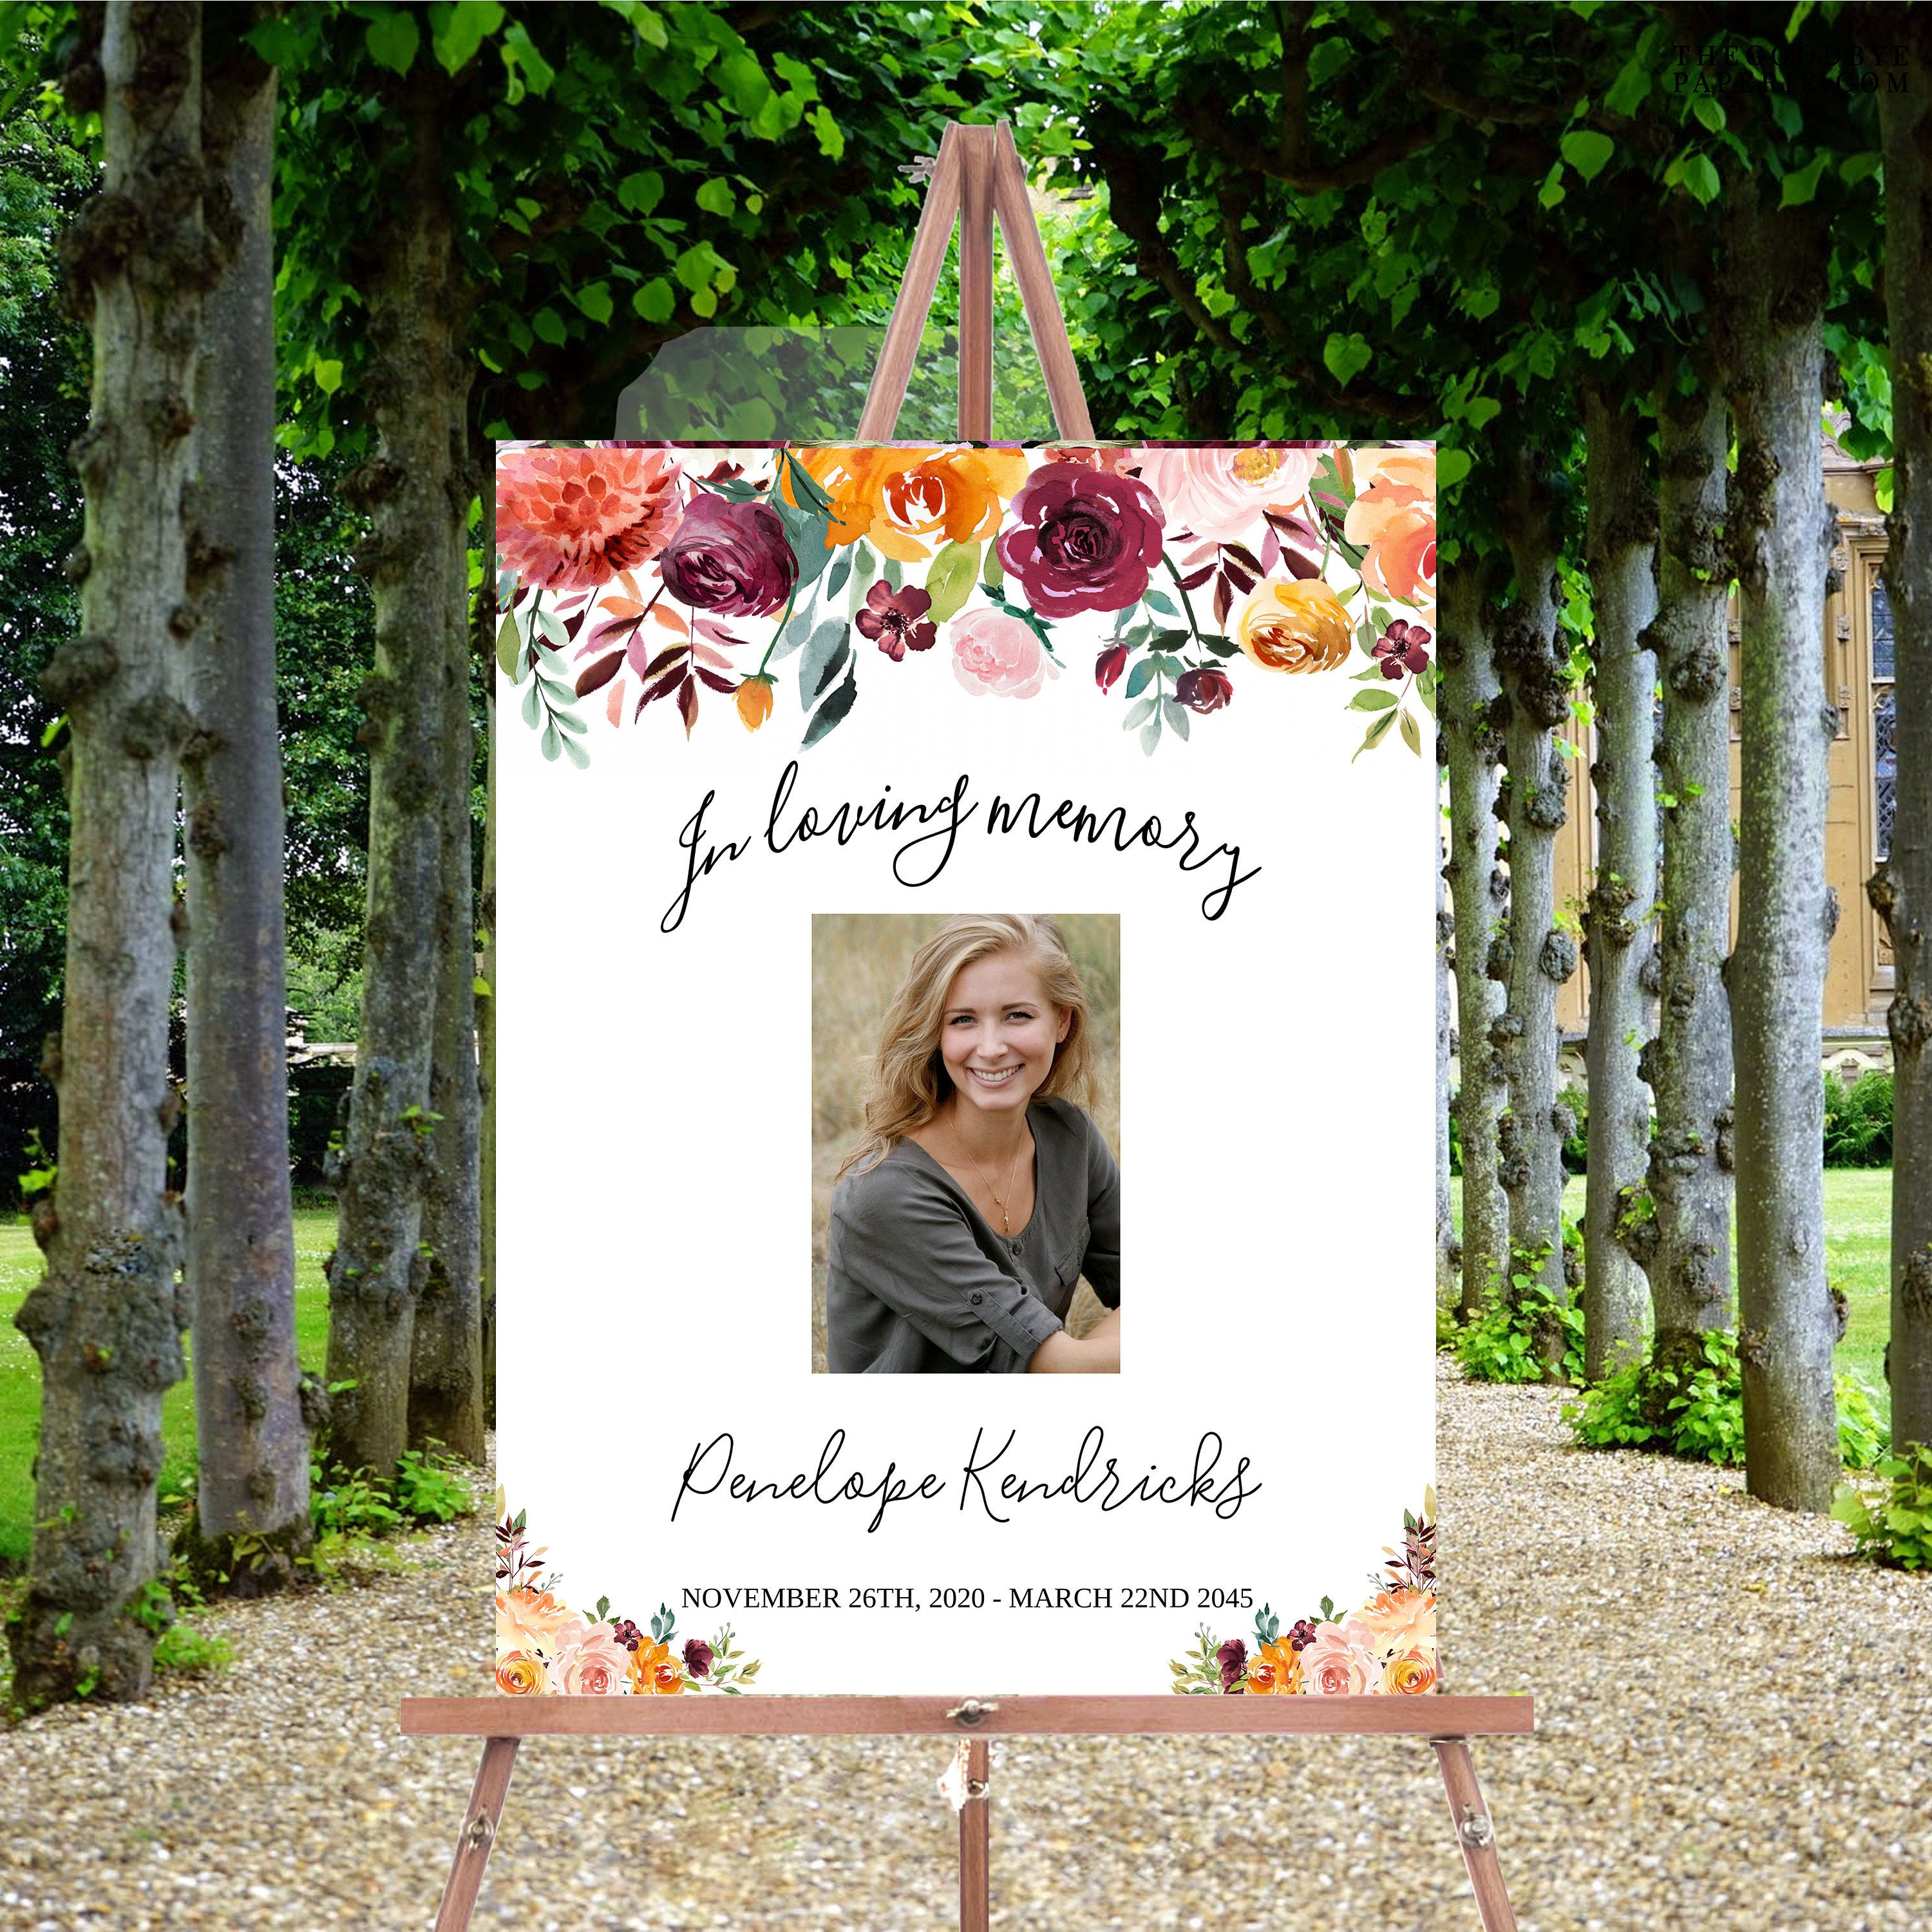 Celebration Of Life Decorations Memorial Service Ideas Celebration Of Life Banner Funeral Poster C Funeral Posters Celebration Of Life Cemetery Decorations